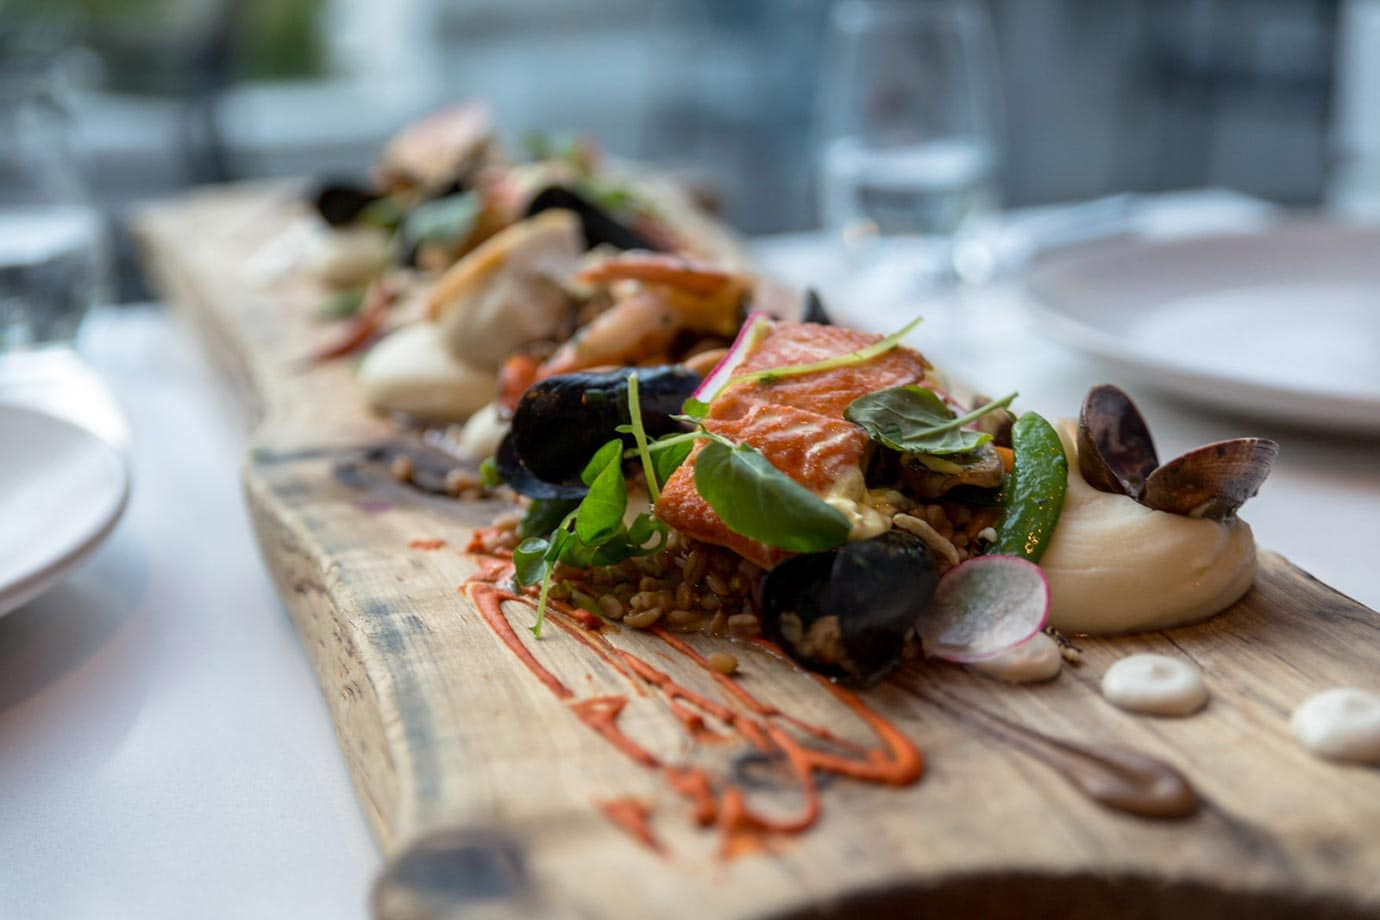 The seafood platter at the Fairmont Waterfront